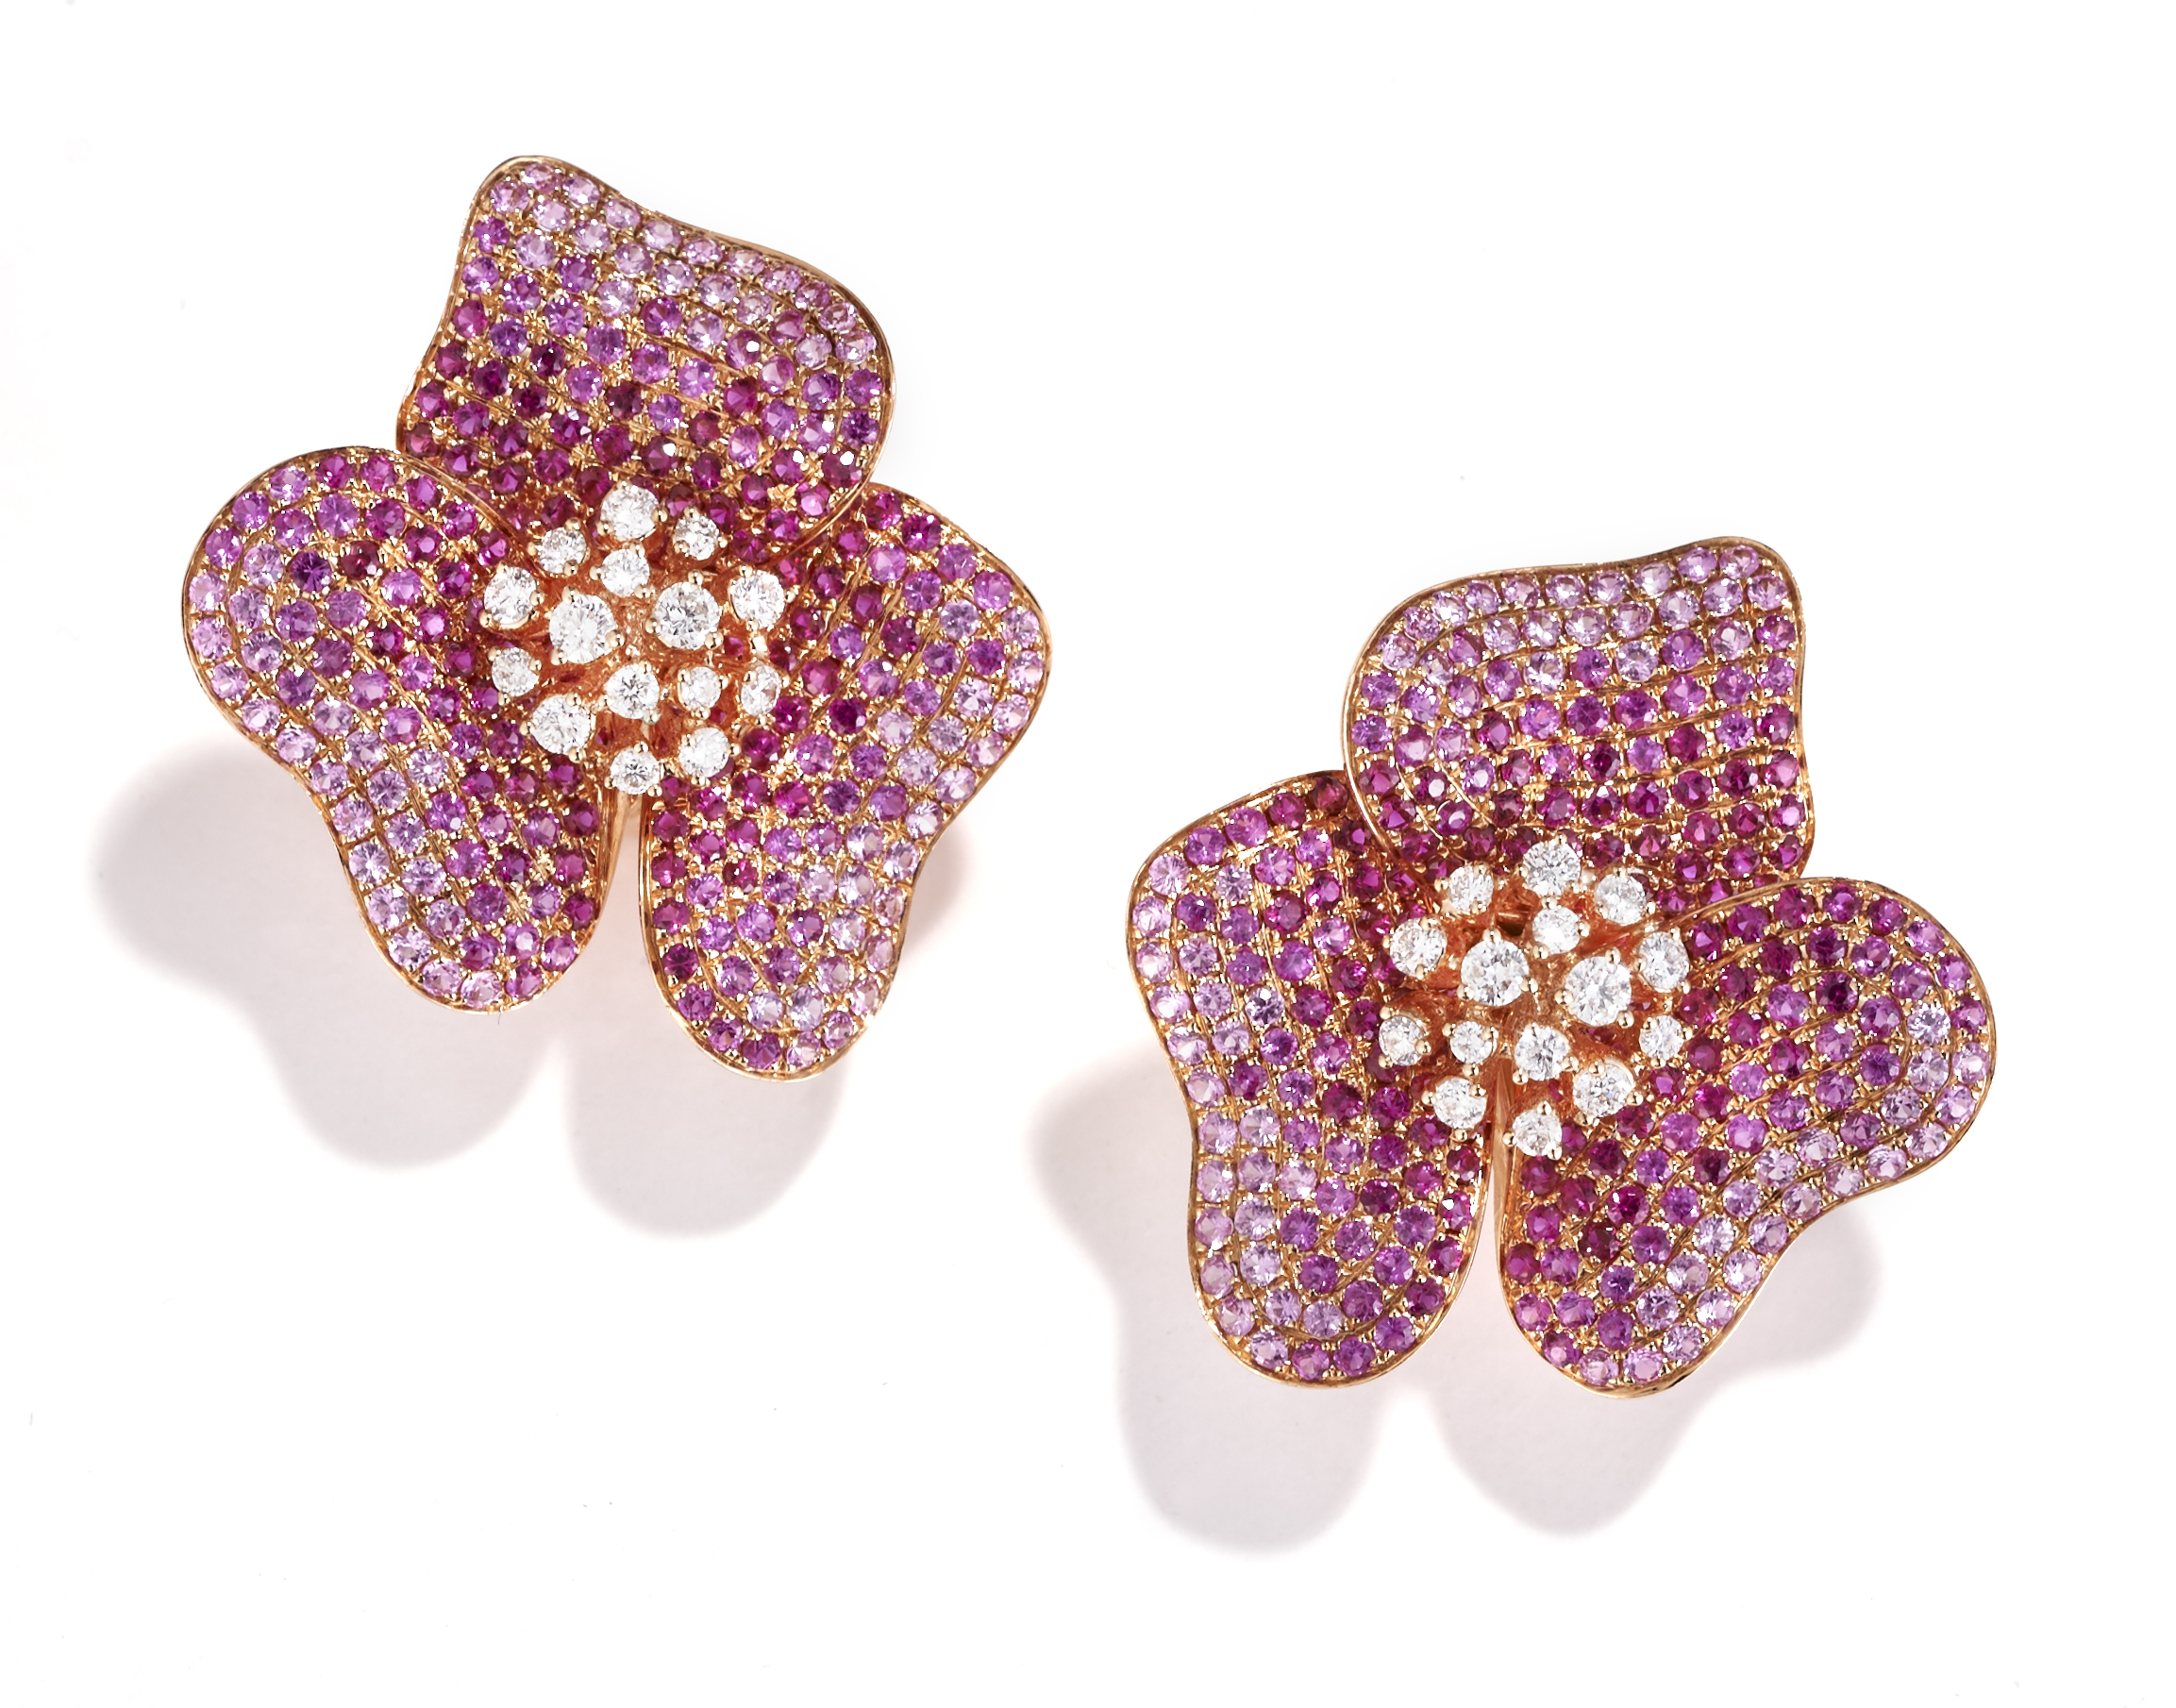 Delicate sapphire flowers with white diamond centers, in 18k rose gold